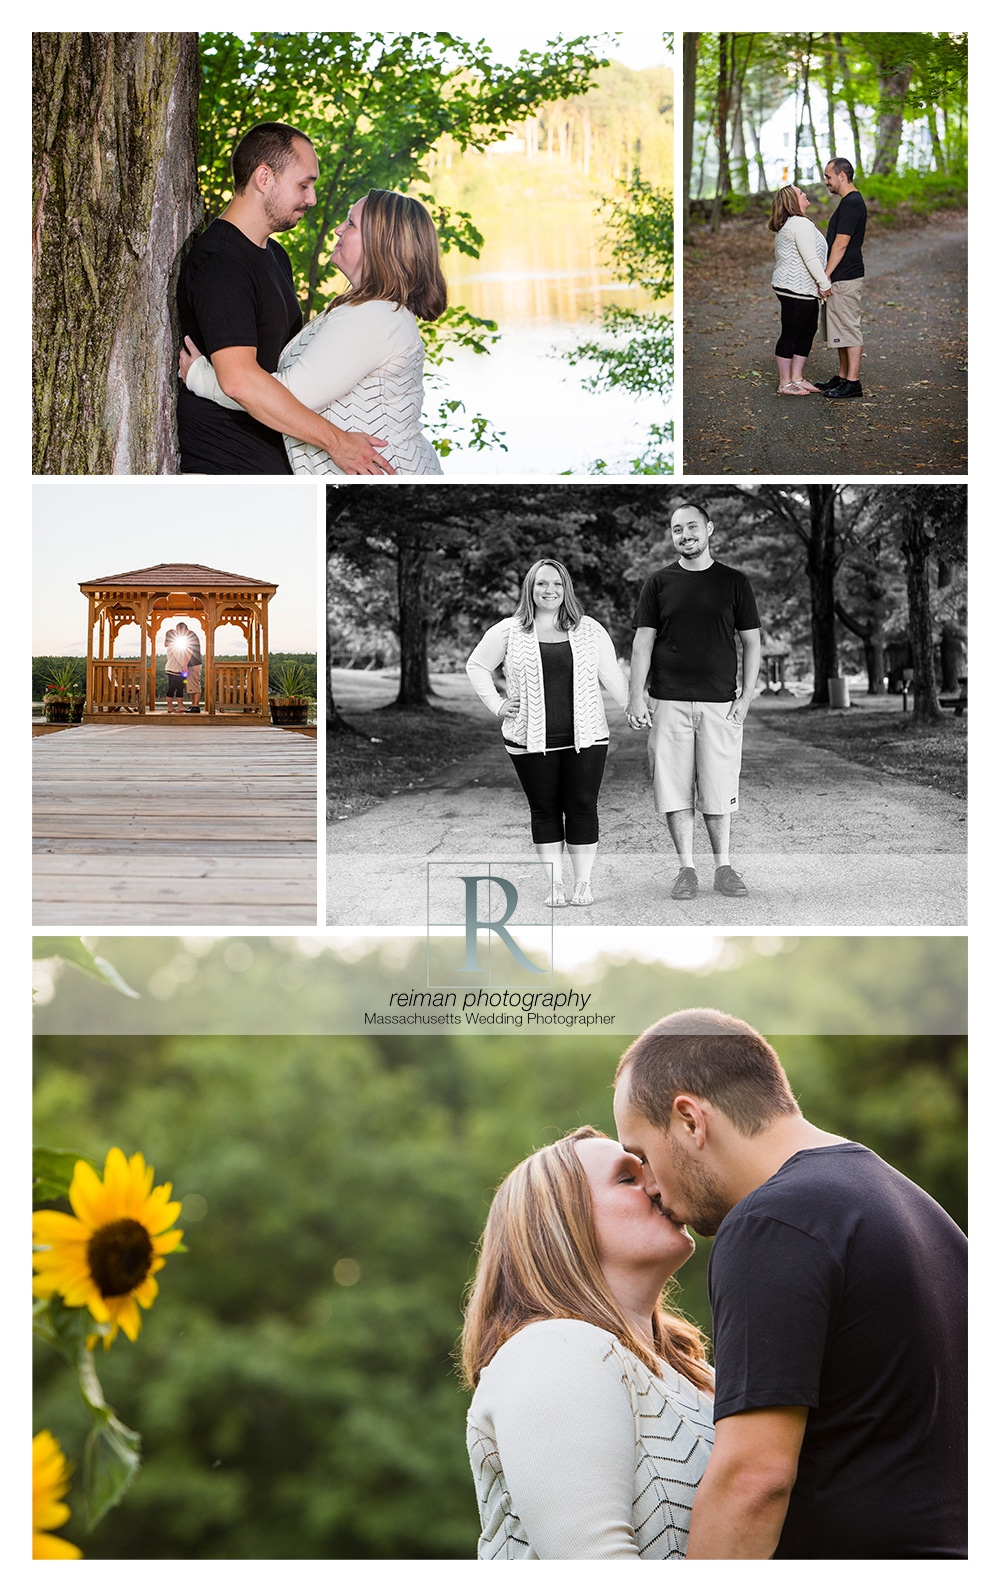 Roseland Park Engagement, Woodstock, CT, Reiman Photography